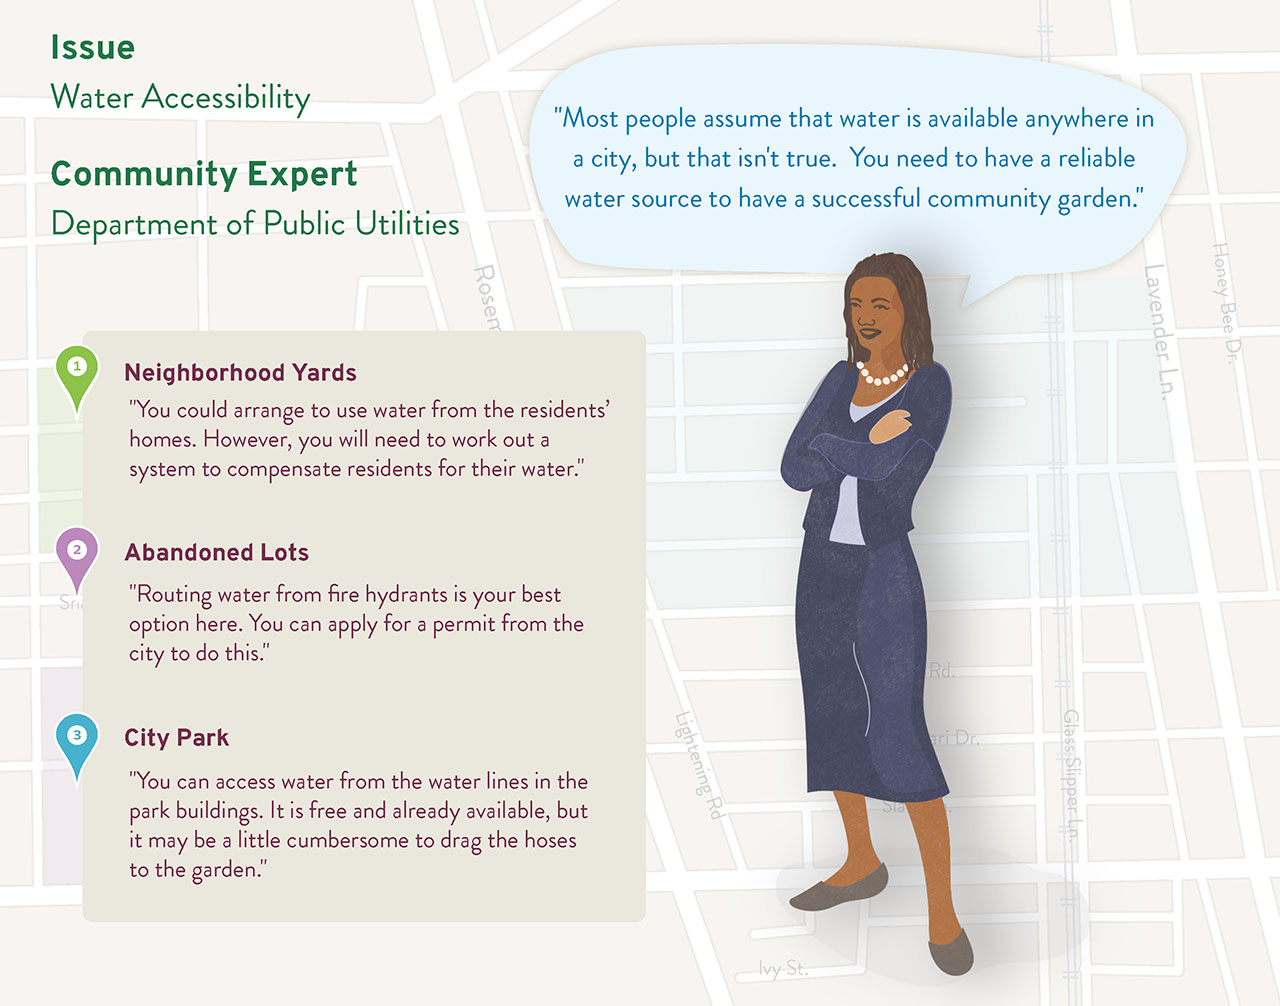 Community Expert Card: Department of Public Utilities